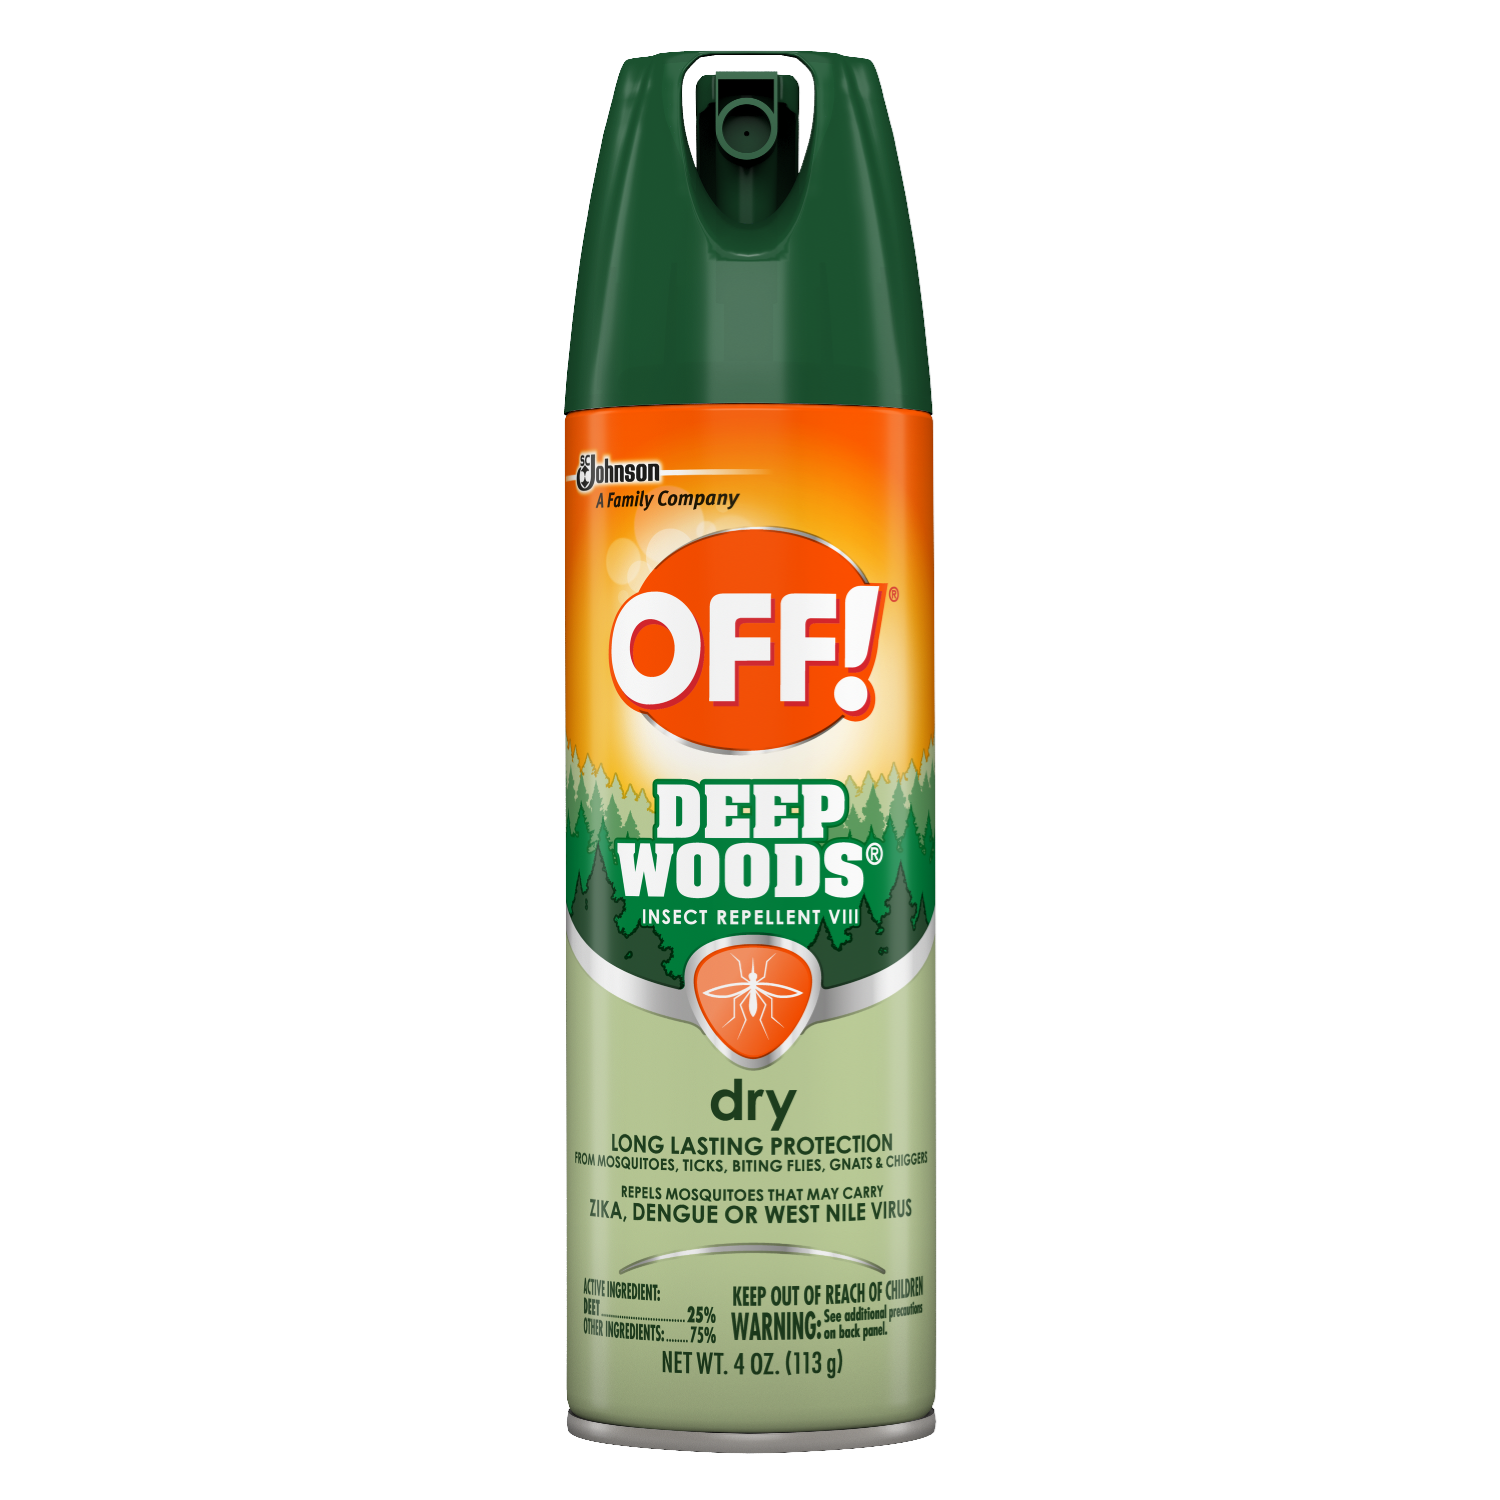 off-deep-woods-insect-repellent-viii-dry-4oz-aerosol-616304